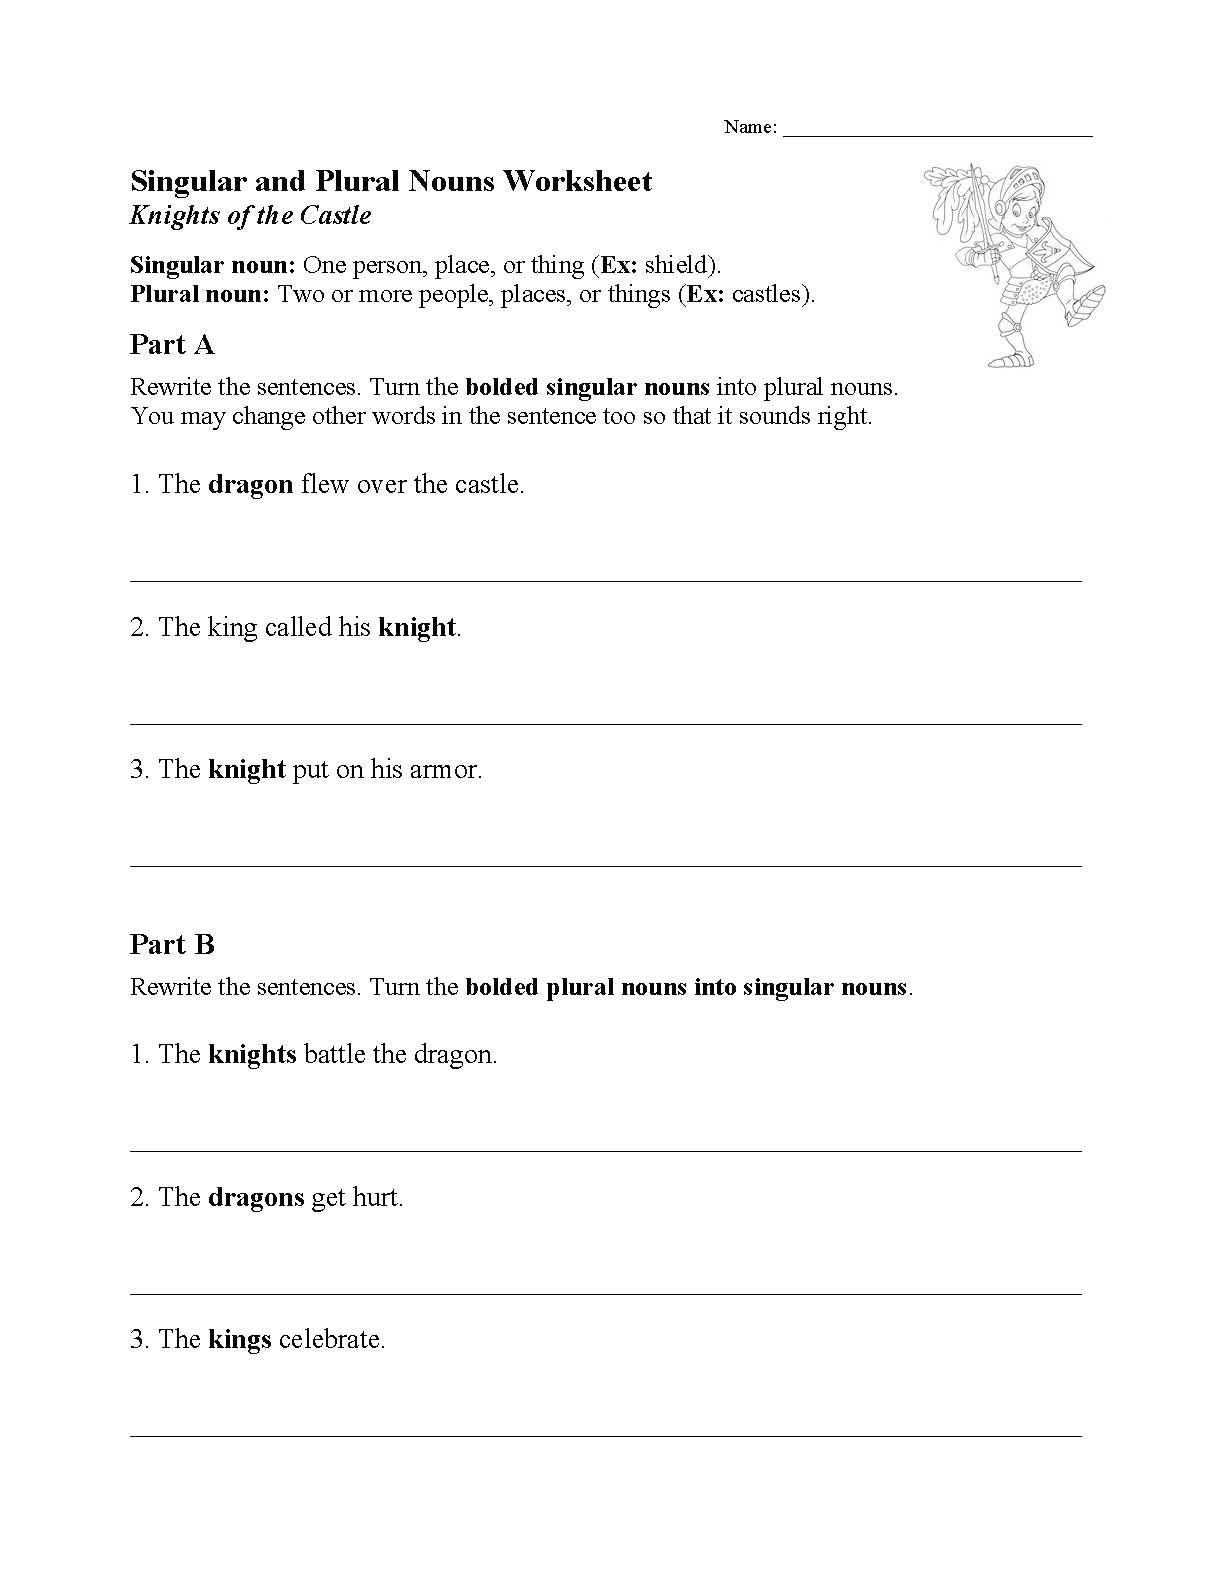 This is a preview image of one of our Noun Worksheets. Click on it to view all of our noun worksheets.